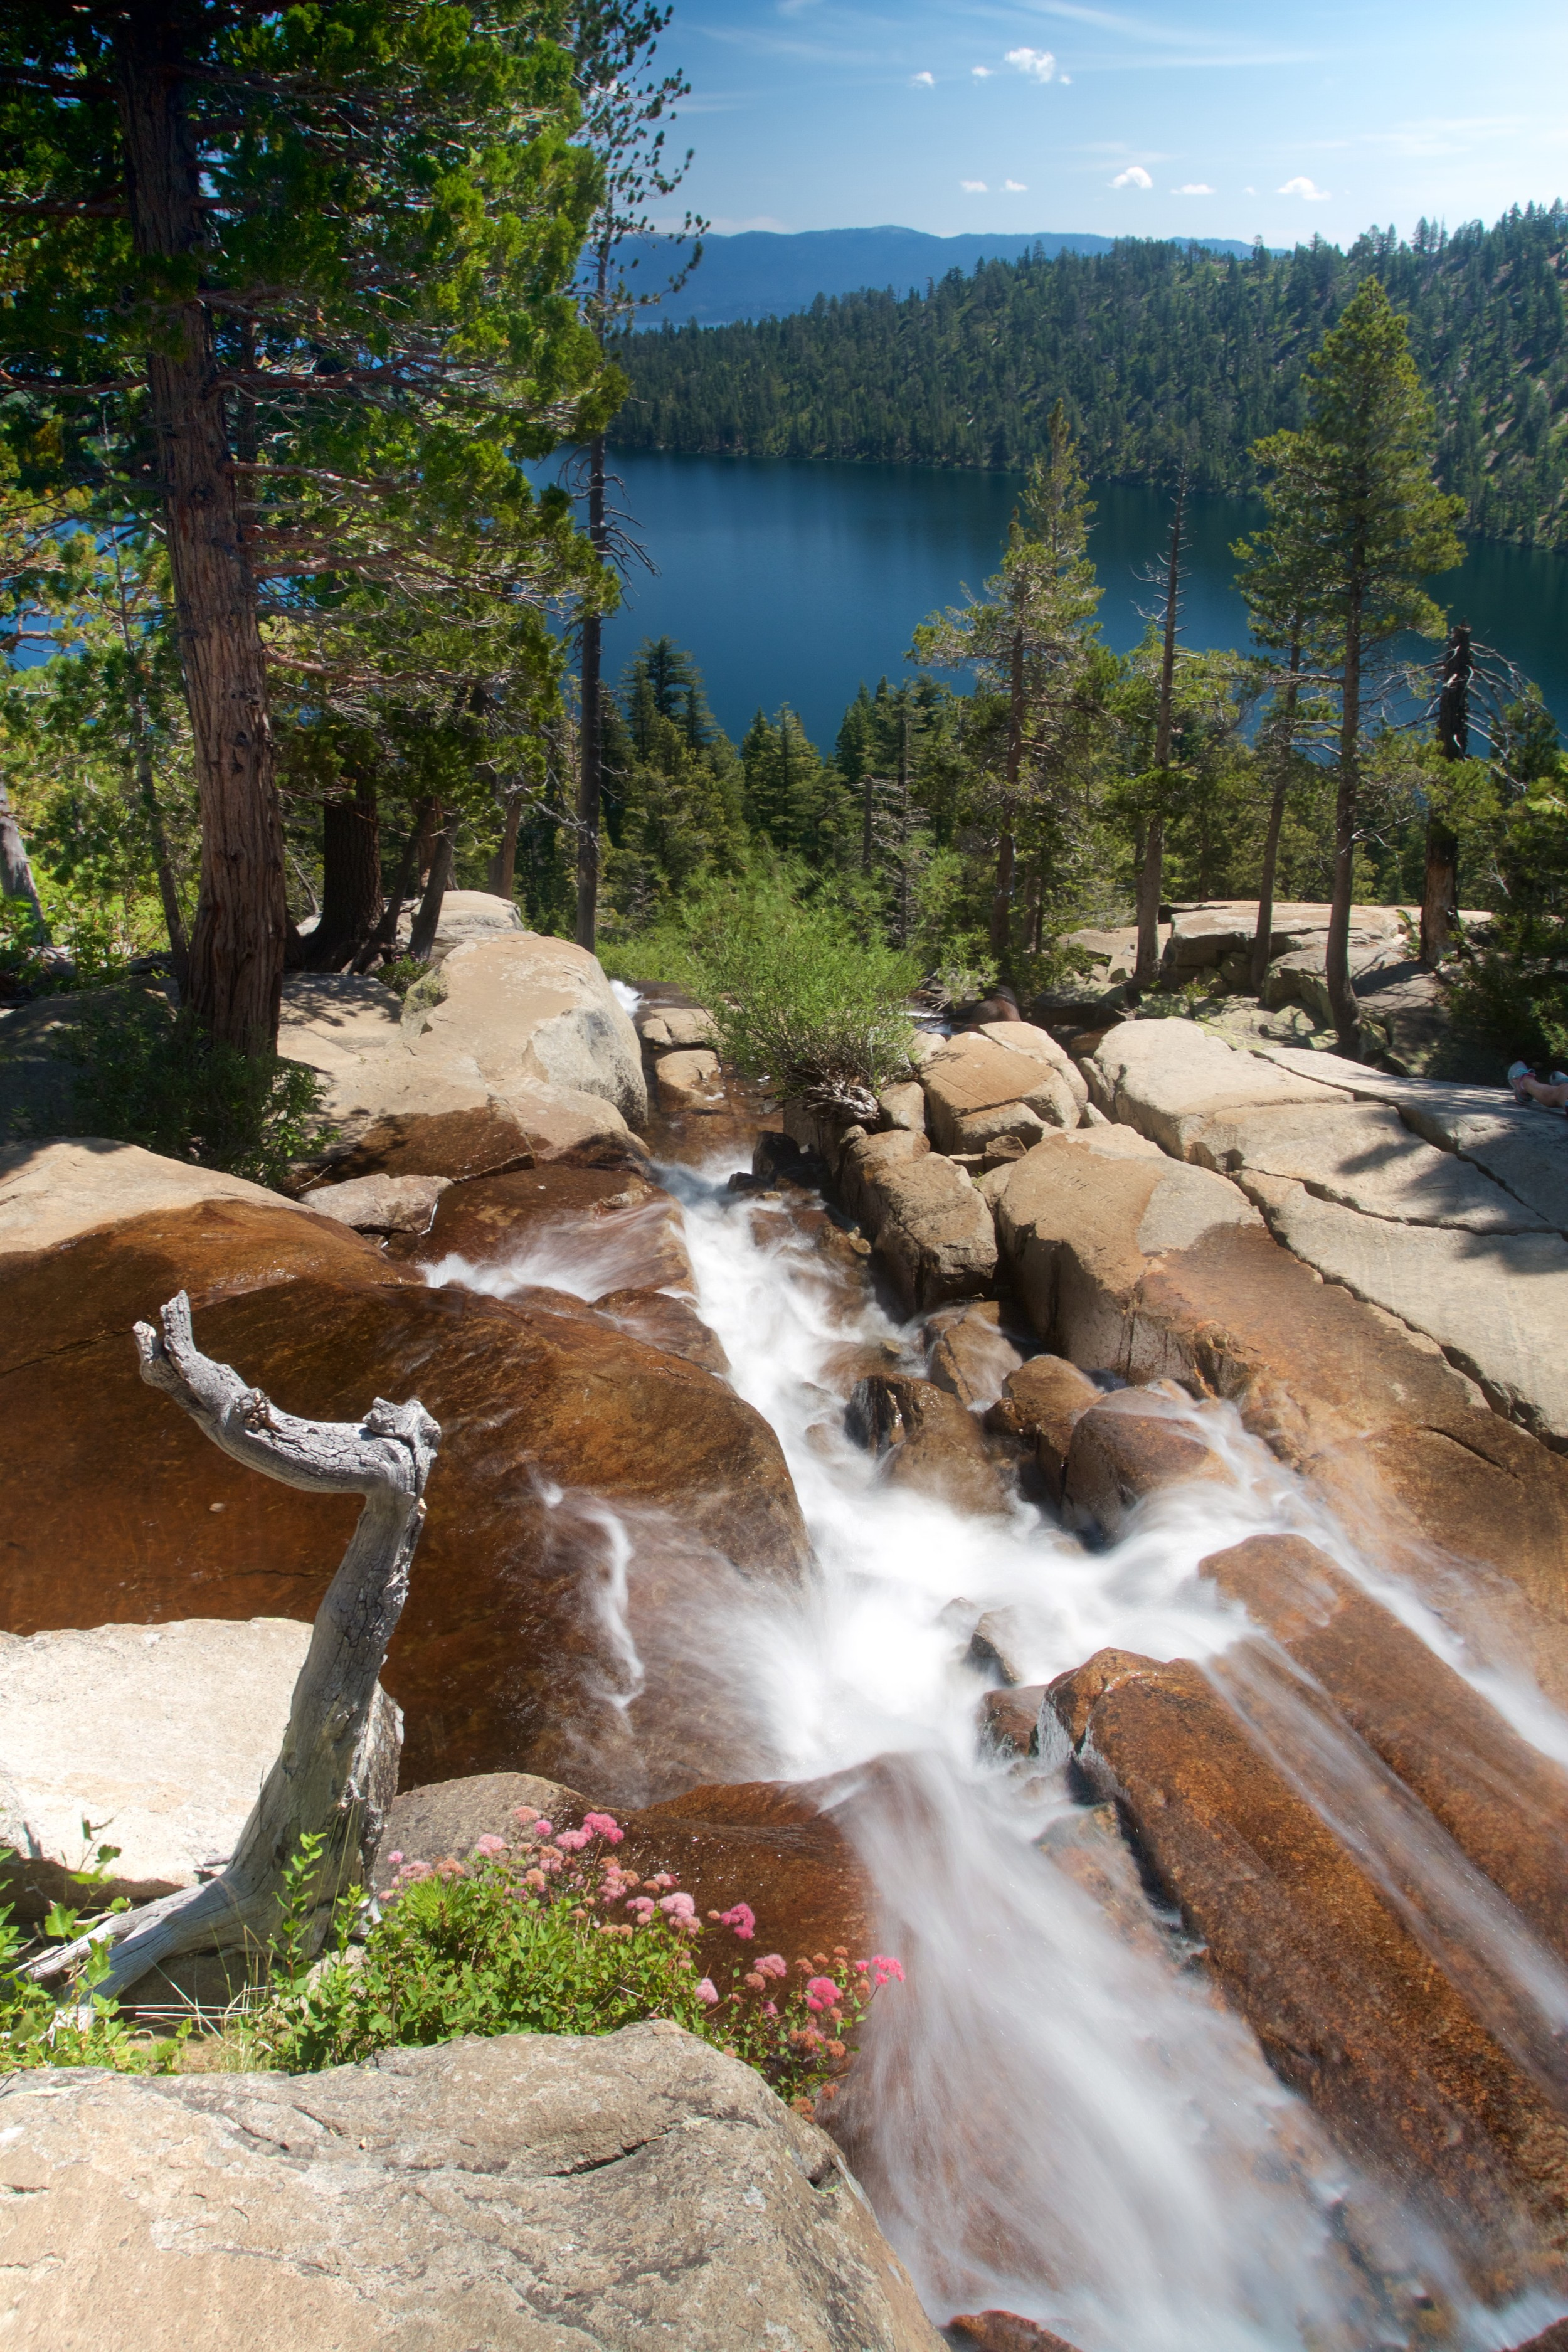 View from Cascade Falls over Cascade Lake and Lake Tahoe.A roughly 1/2 second exposure at f/11 with my Canon 7D, 17-40L, and Neewar Vari-ND filter.